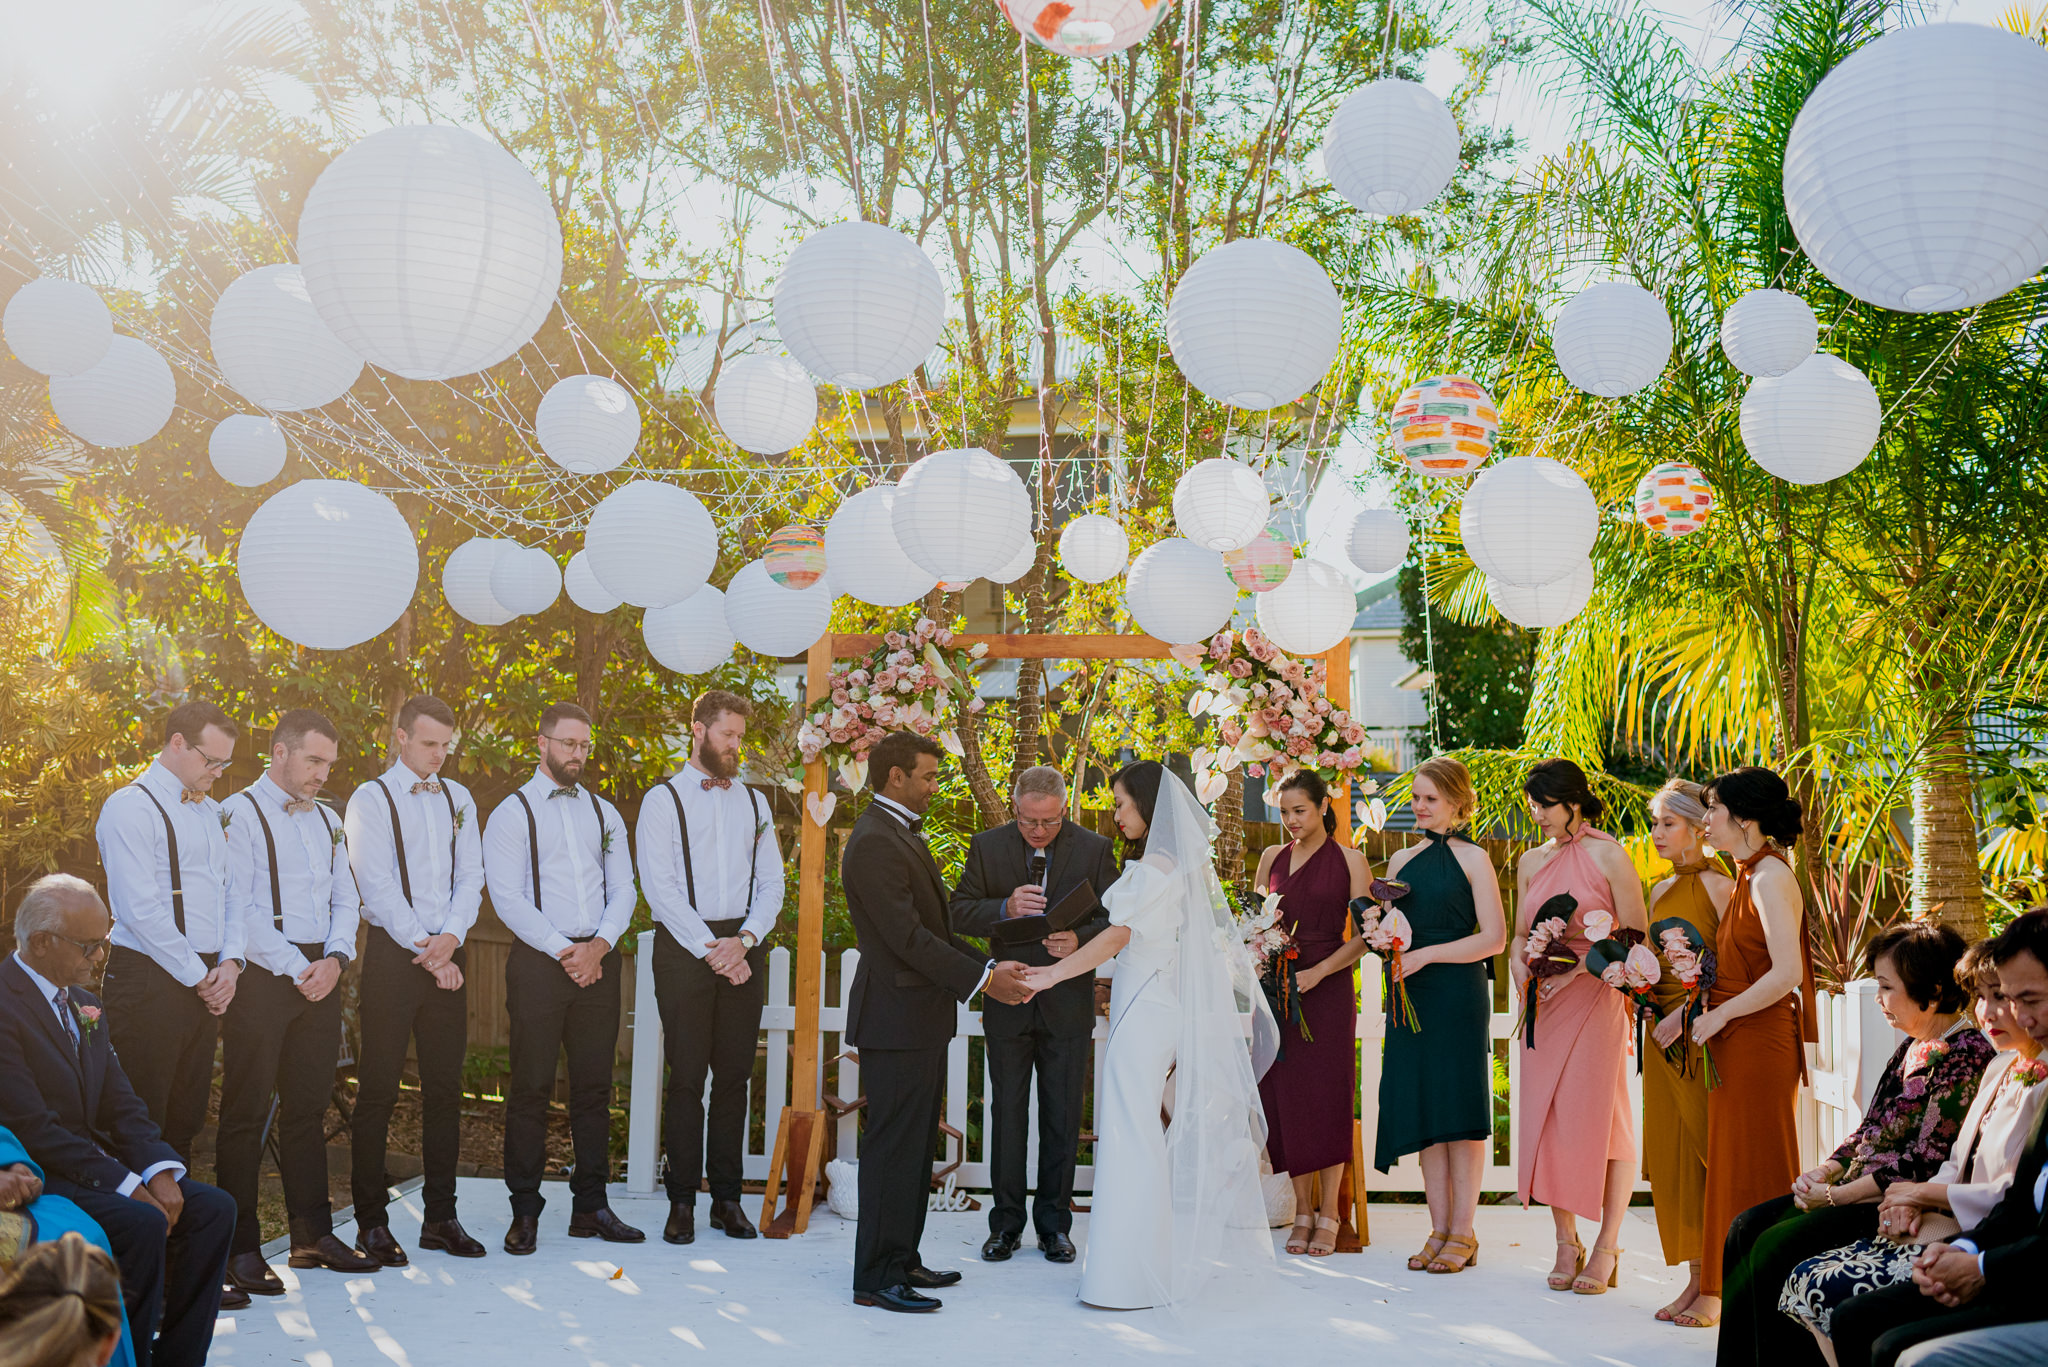 Bridal party praying together during a wedding ceremony in a garden